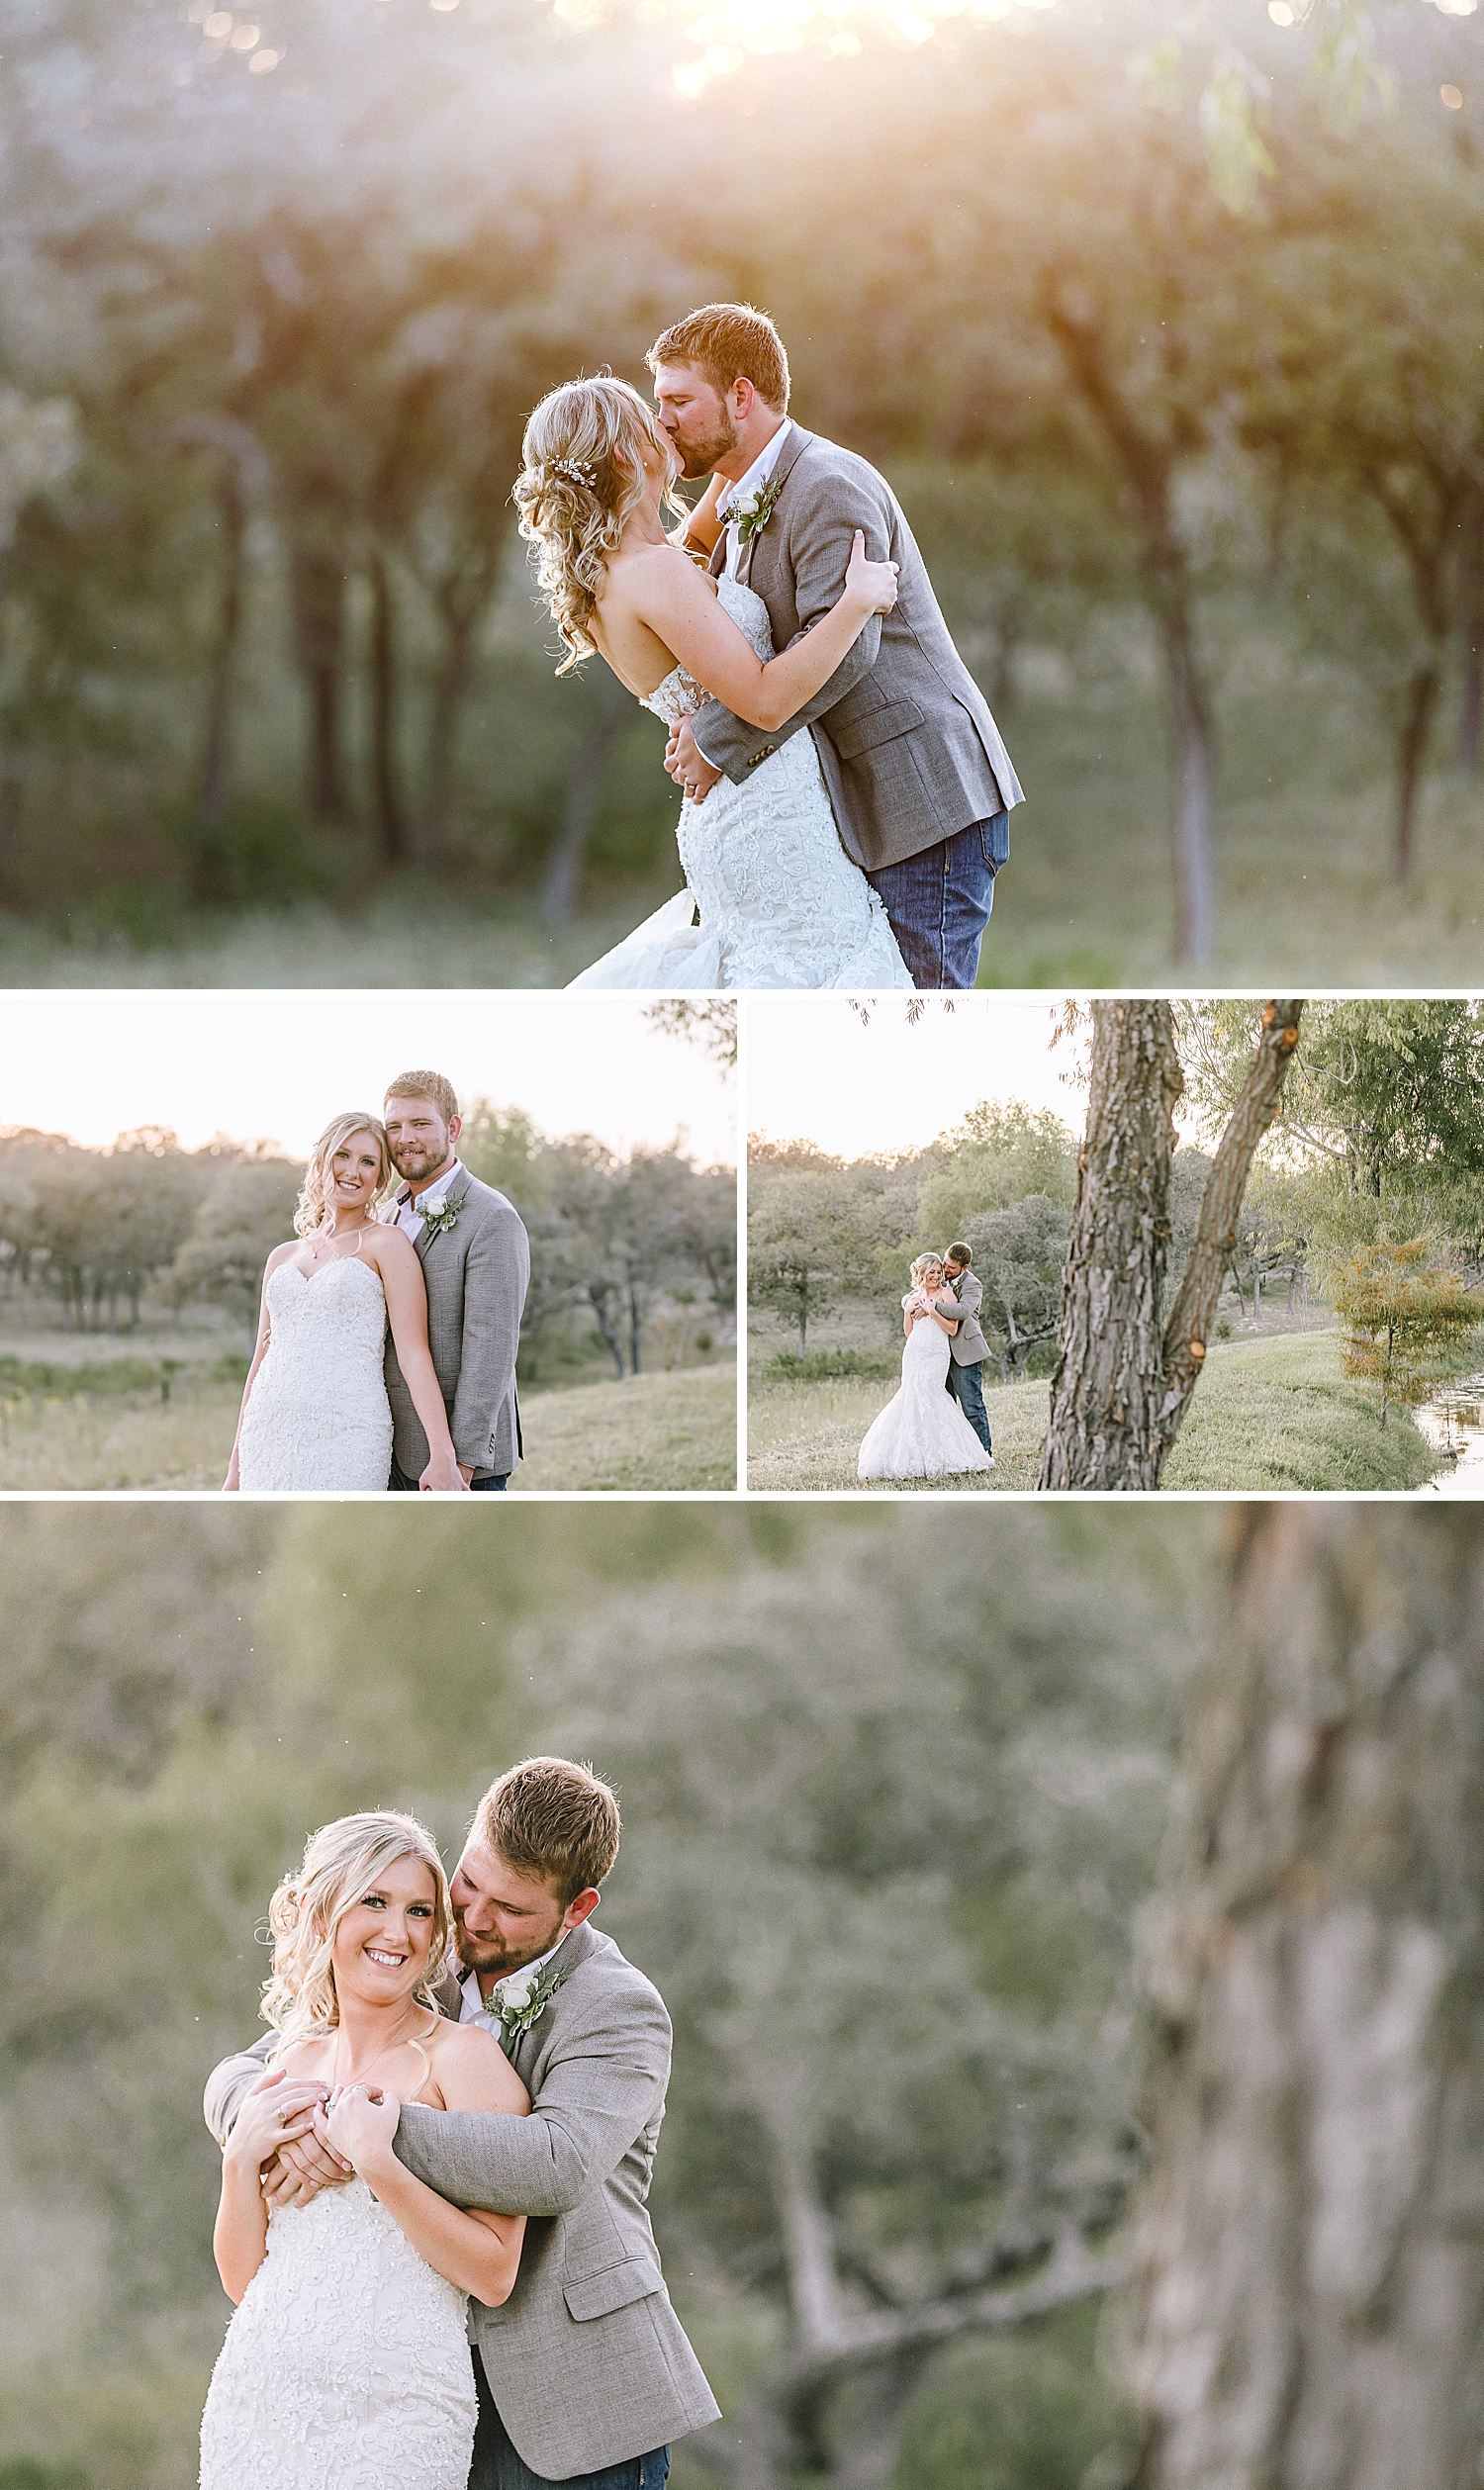 Rackler-Ranch-LaVernia-Texas-Wedding-Carly-Barton-Photography_0098.jpg